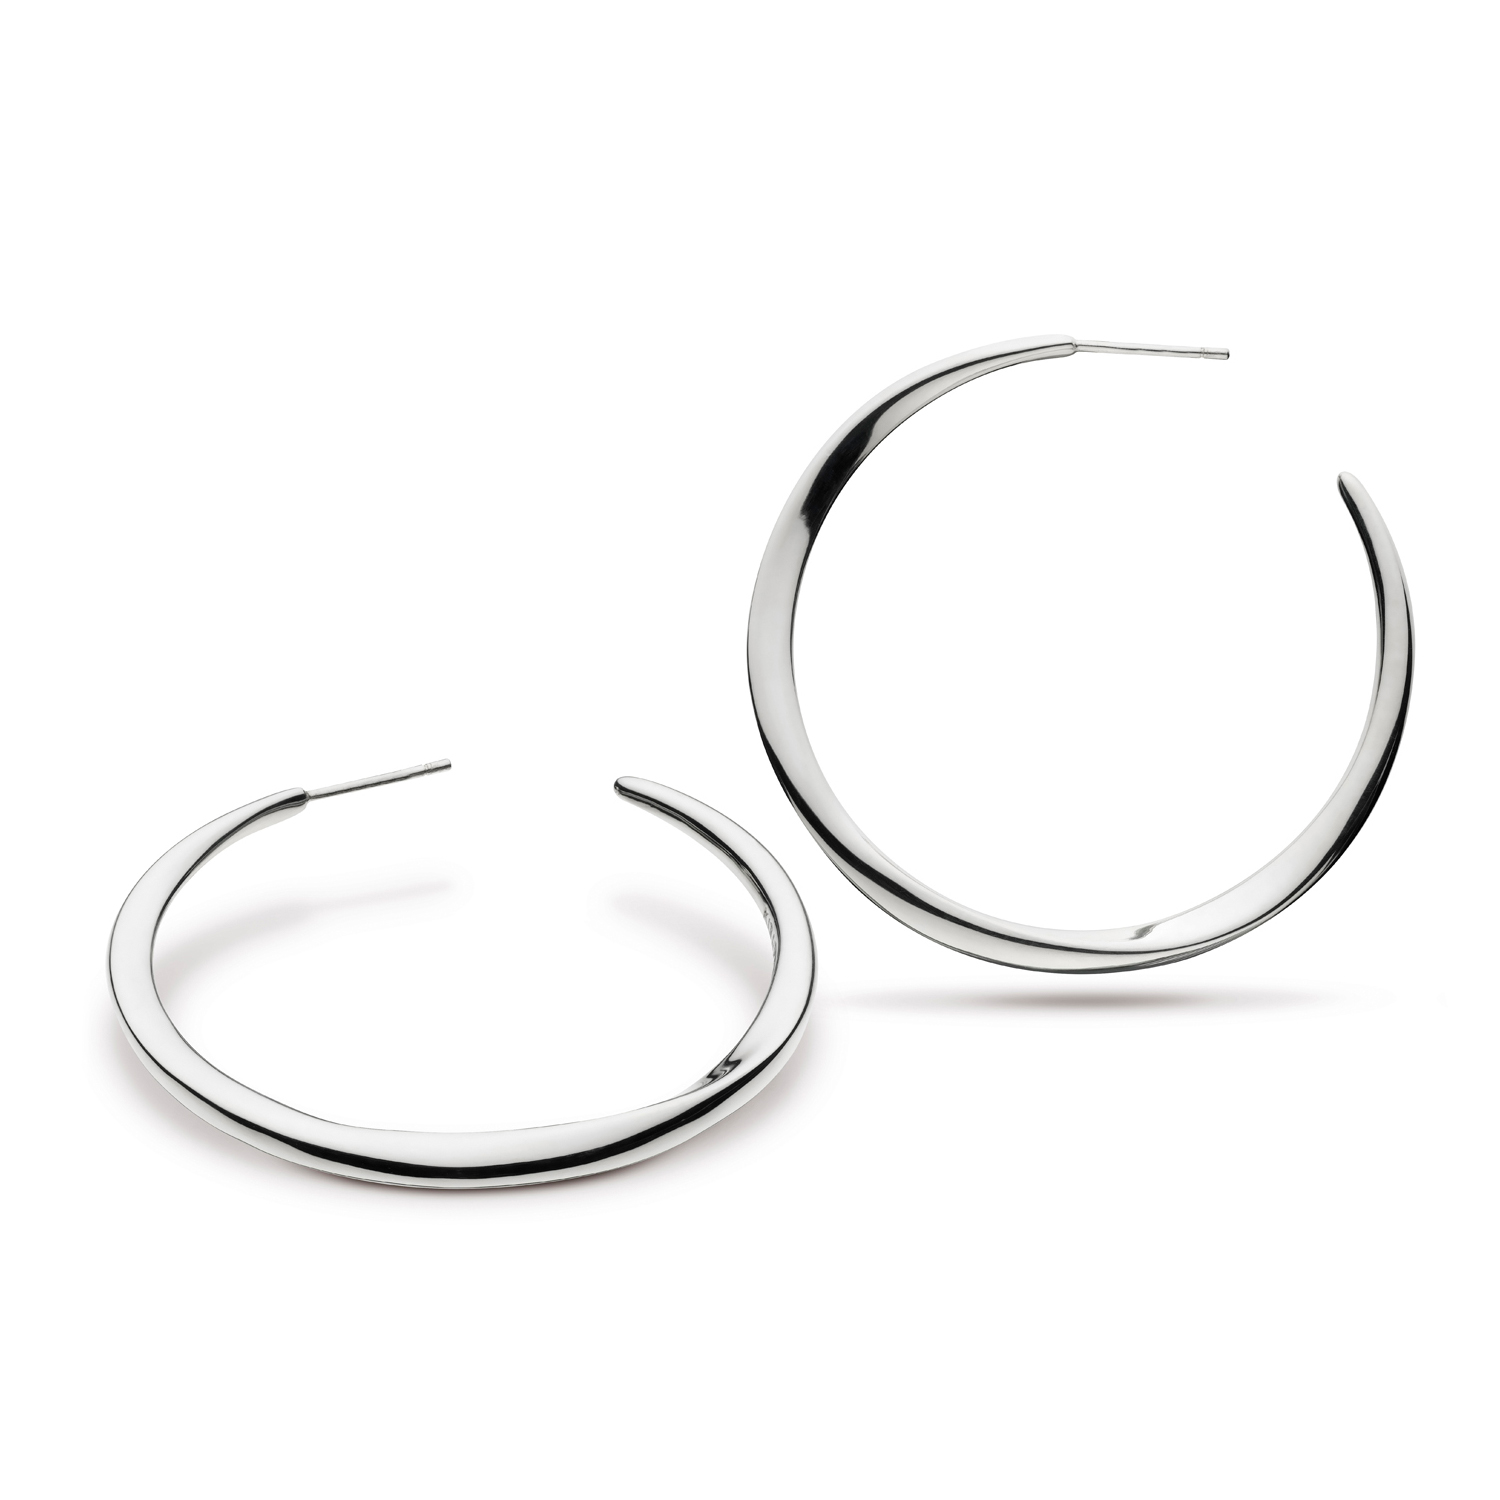 castle-rocks-and-jewelry-bevel-curve-large-45mm-hoop-earrings-silver-kit-heath